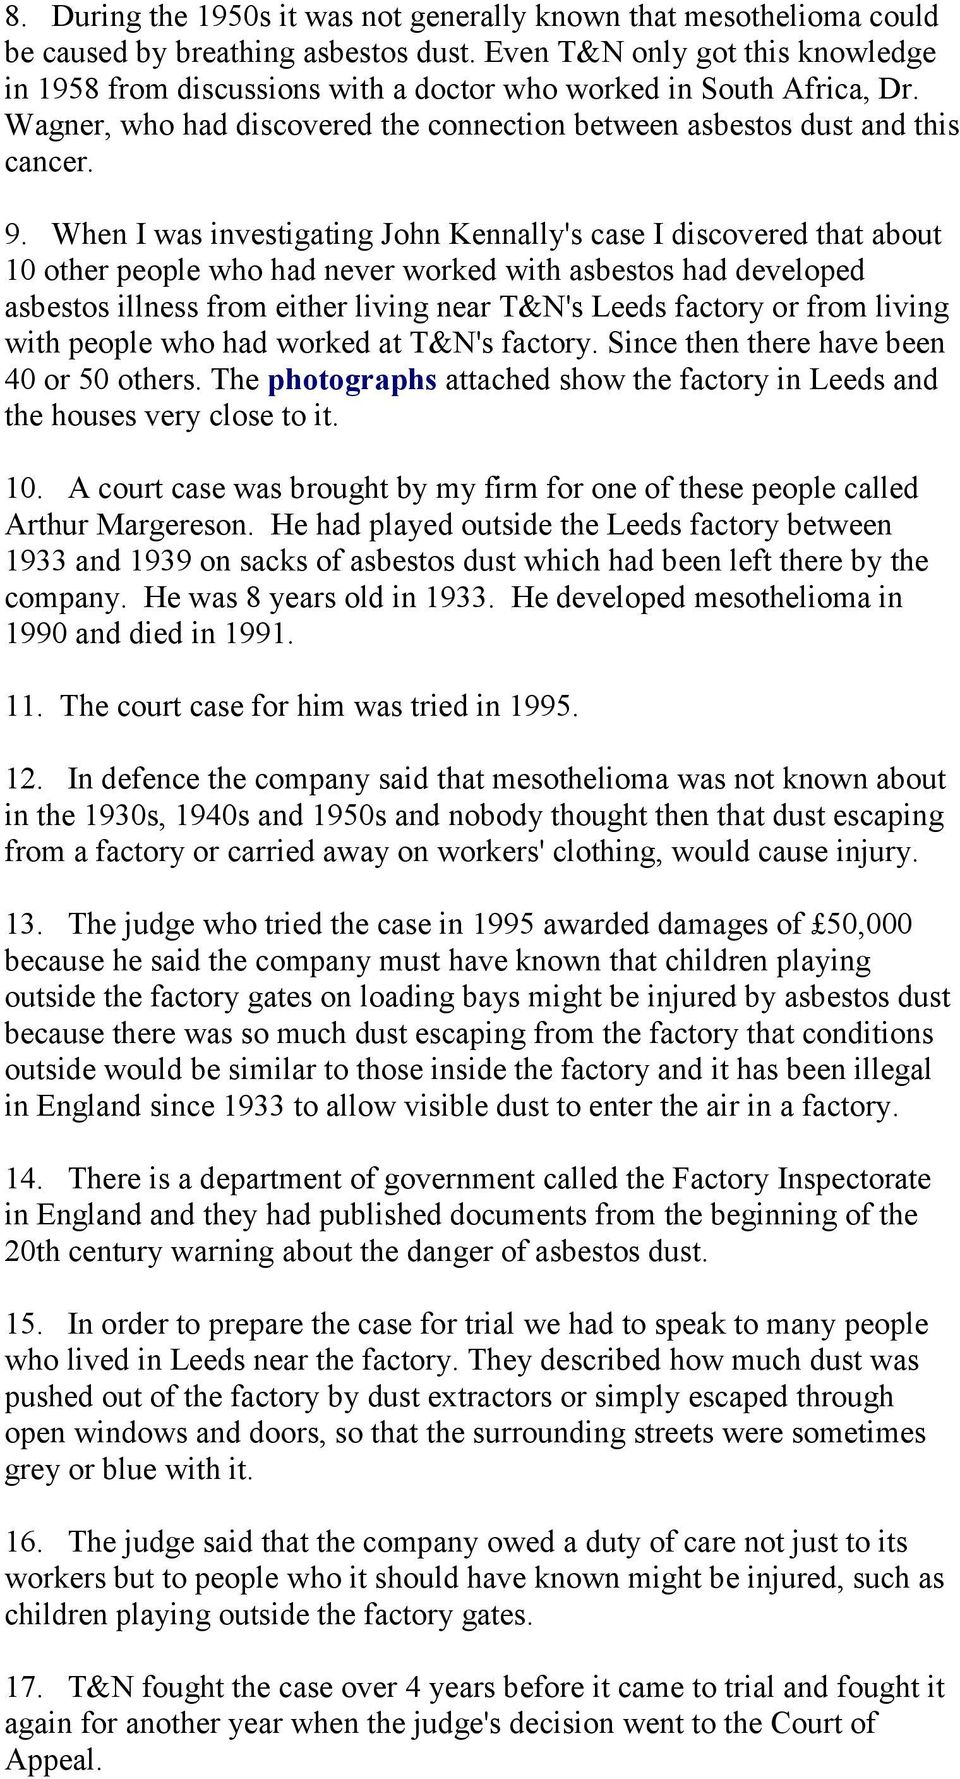 When I was investigating John Kennally's case I discovered that about 10 other people who had never worked with asbestos had developed asbestos illness from either living near T&N's Leeds factory or